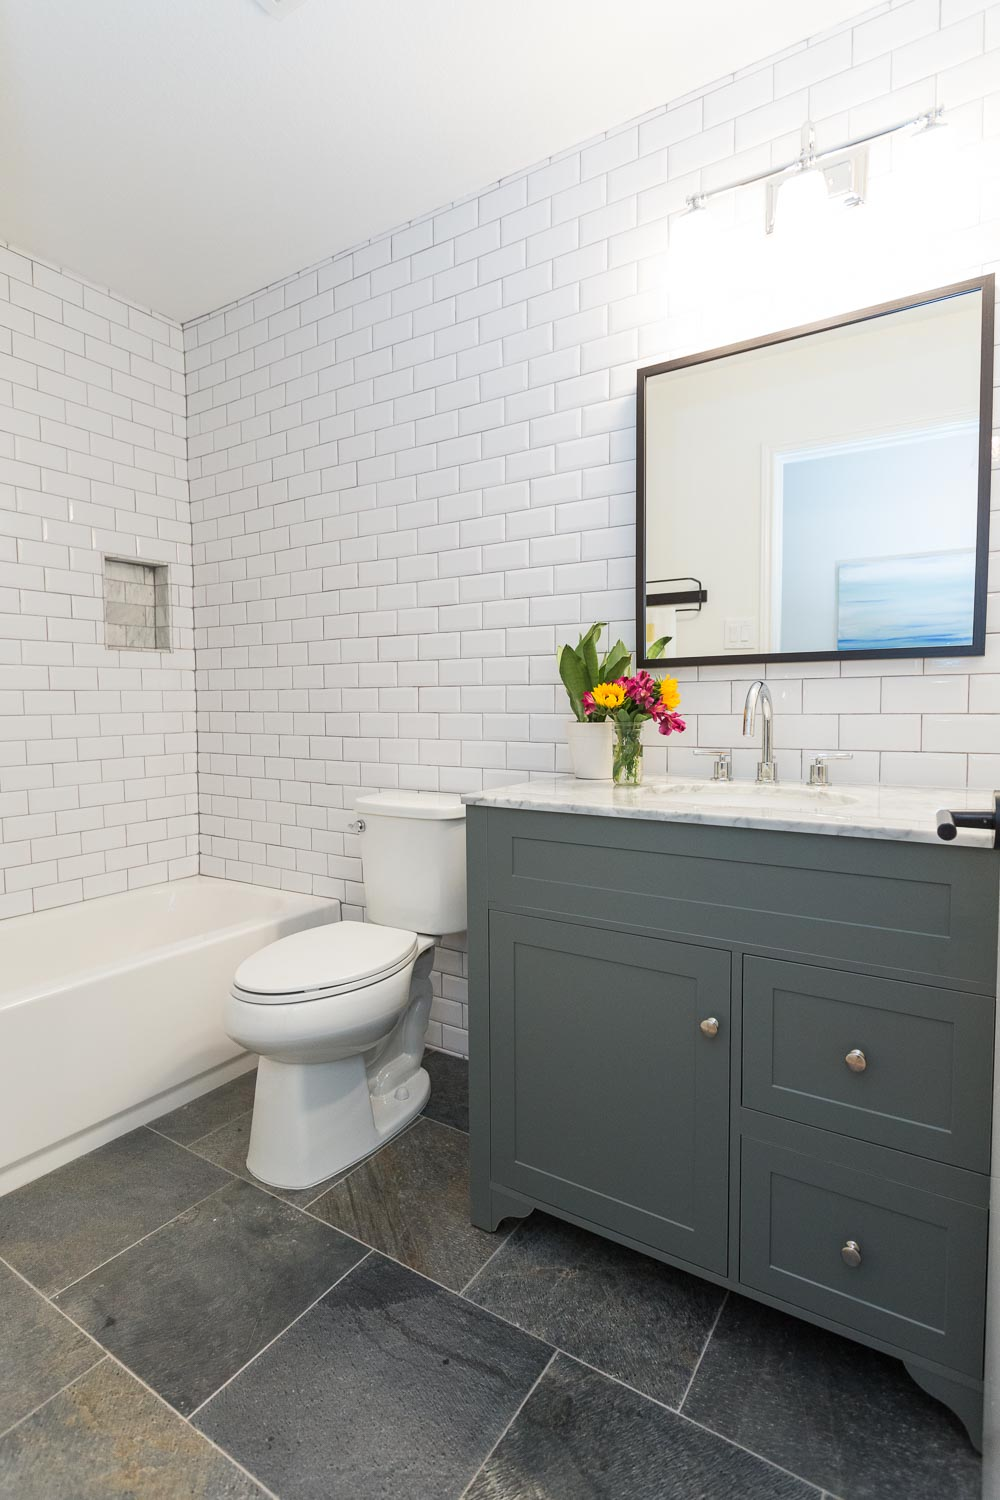 East austin modern farmhouse just completed making modern home white subway tile with gray grout slate quartzite floors modern gray vanity with carrara dailygadgetfo Choice Image